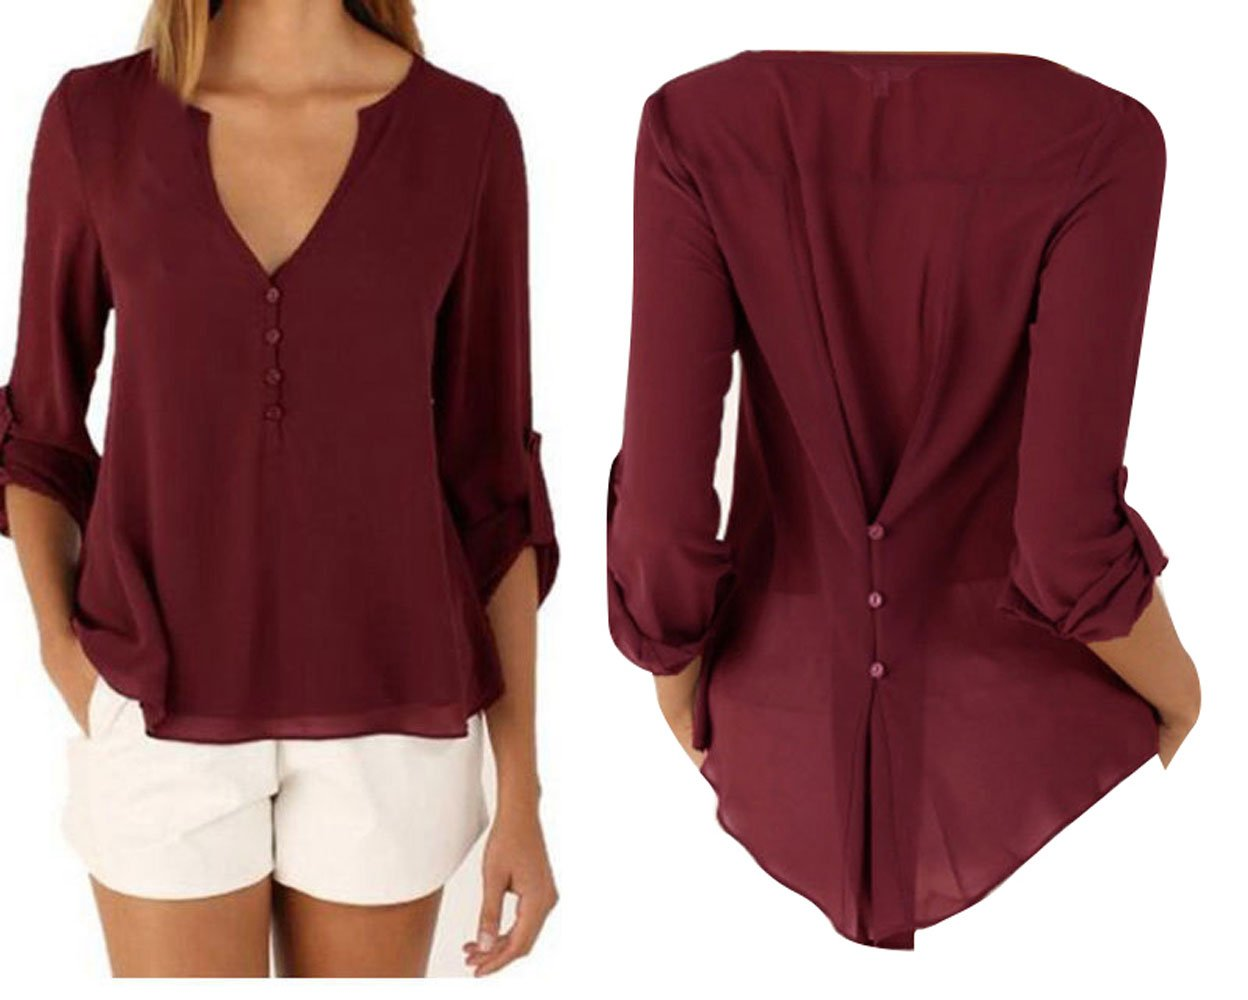 Pevor Women Casual Deep V-Neck Cuffed Sleeves Solid Chiffon Blouse Shirt Top, L,Red